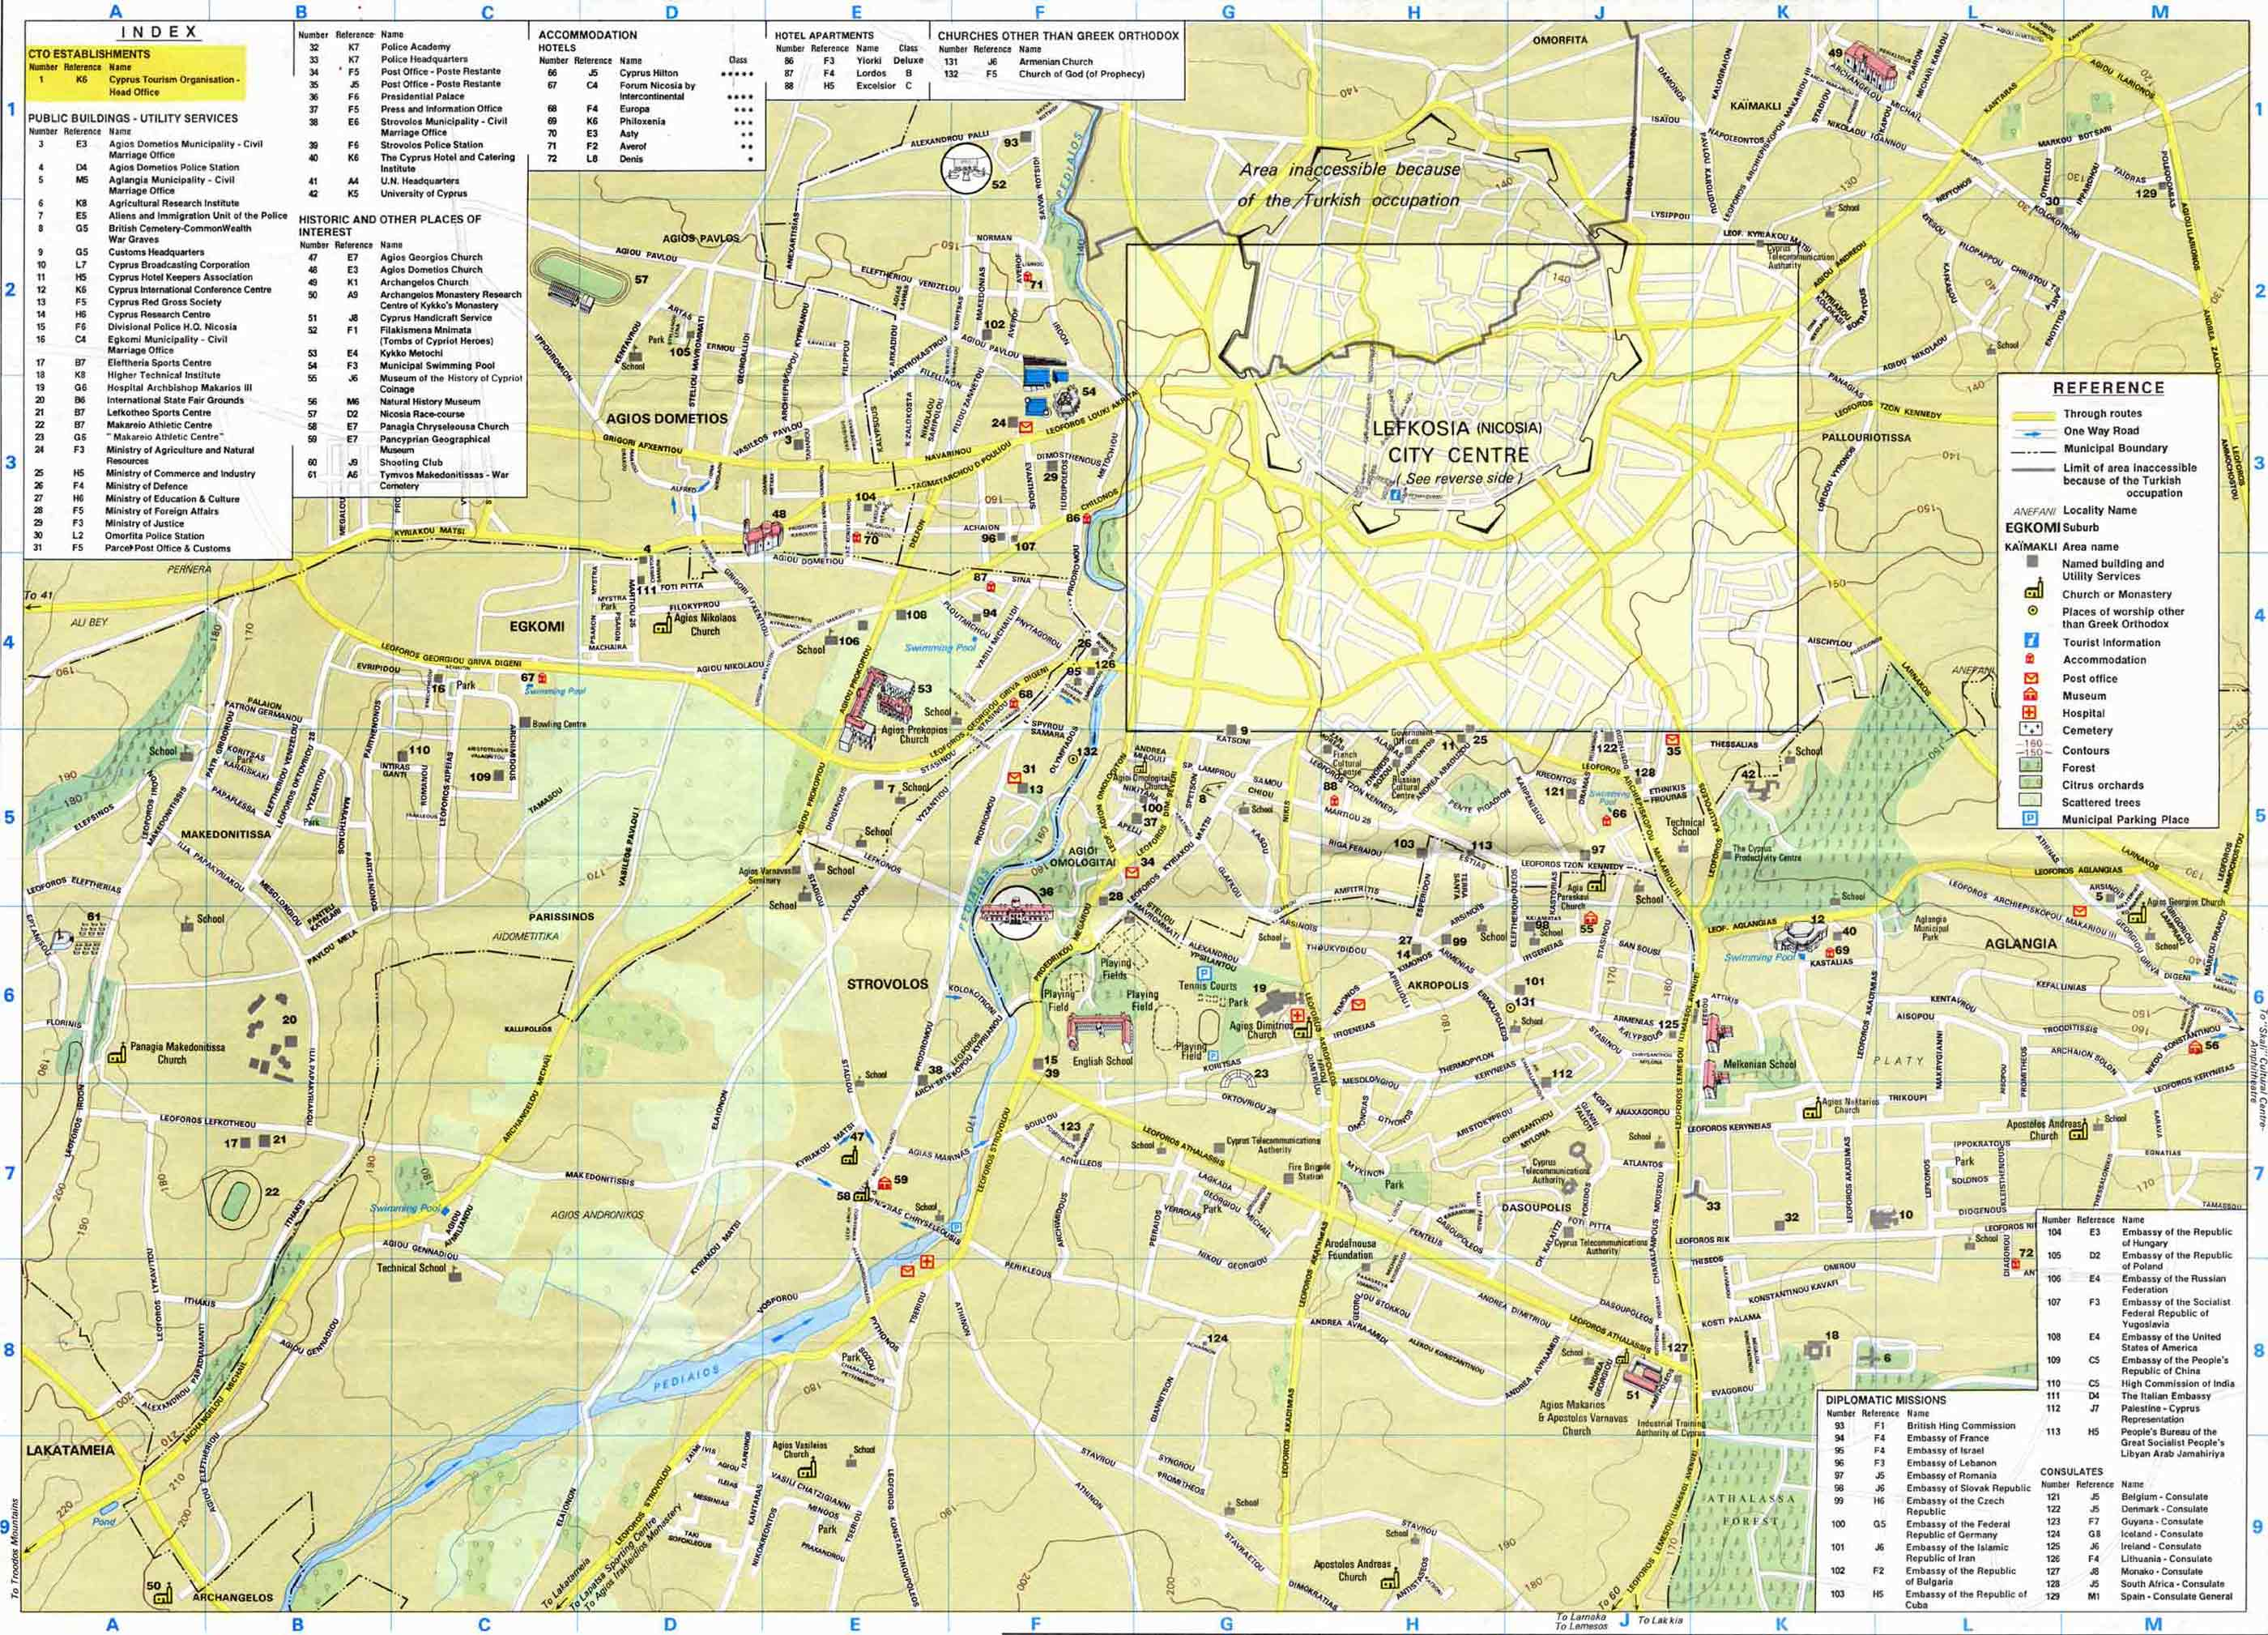 Nicosia Maps Nicosia Area Map And Nicosia City Map - nicosia map